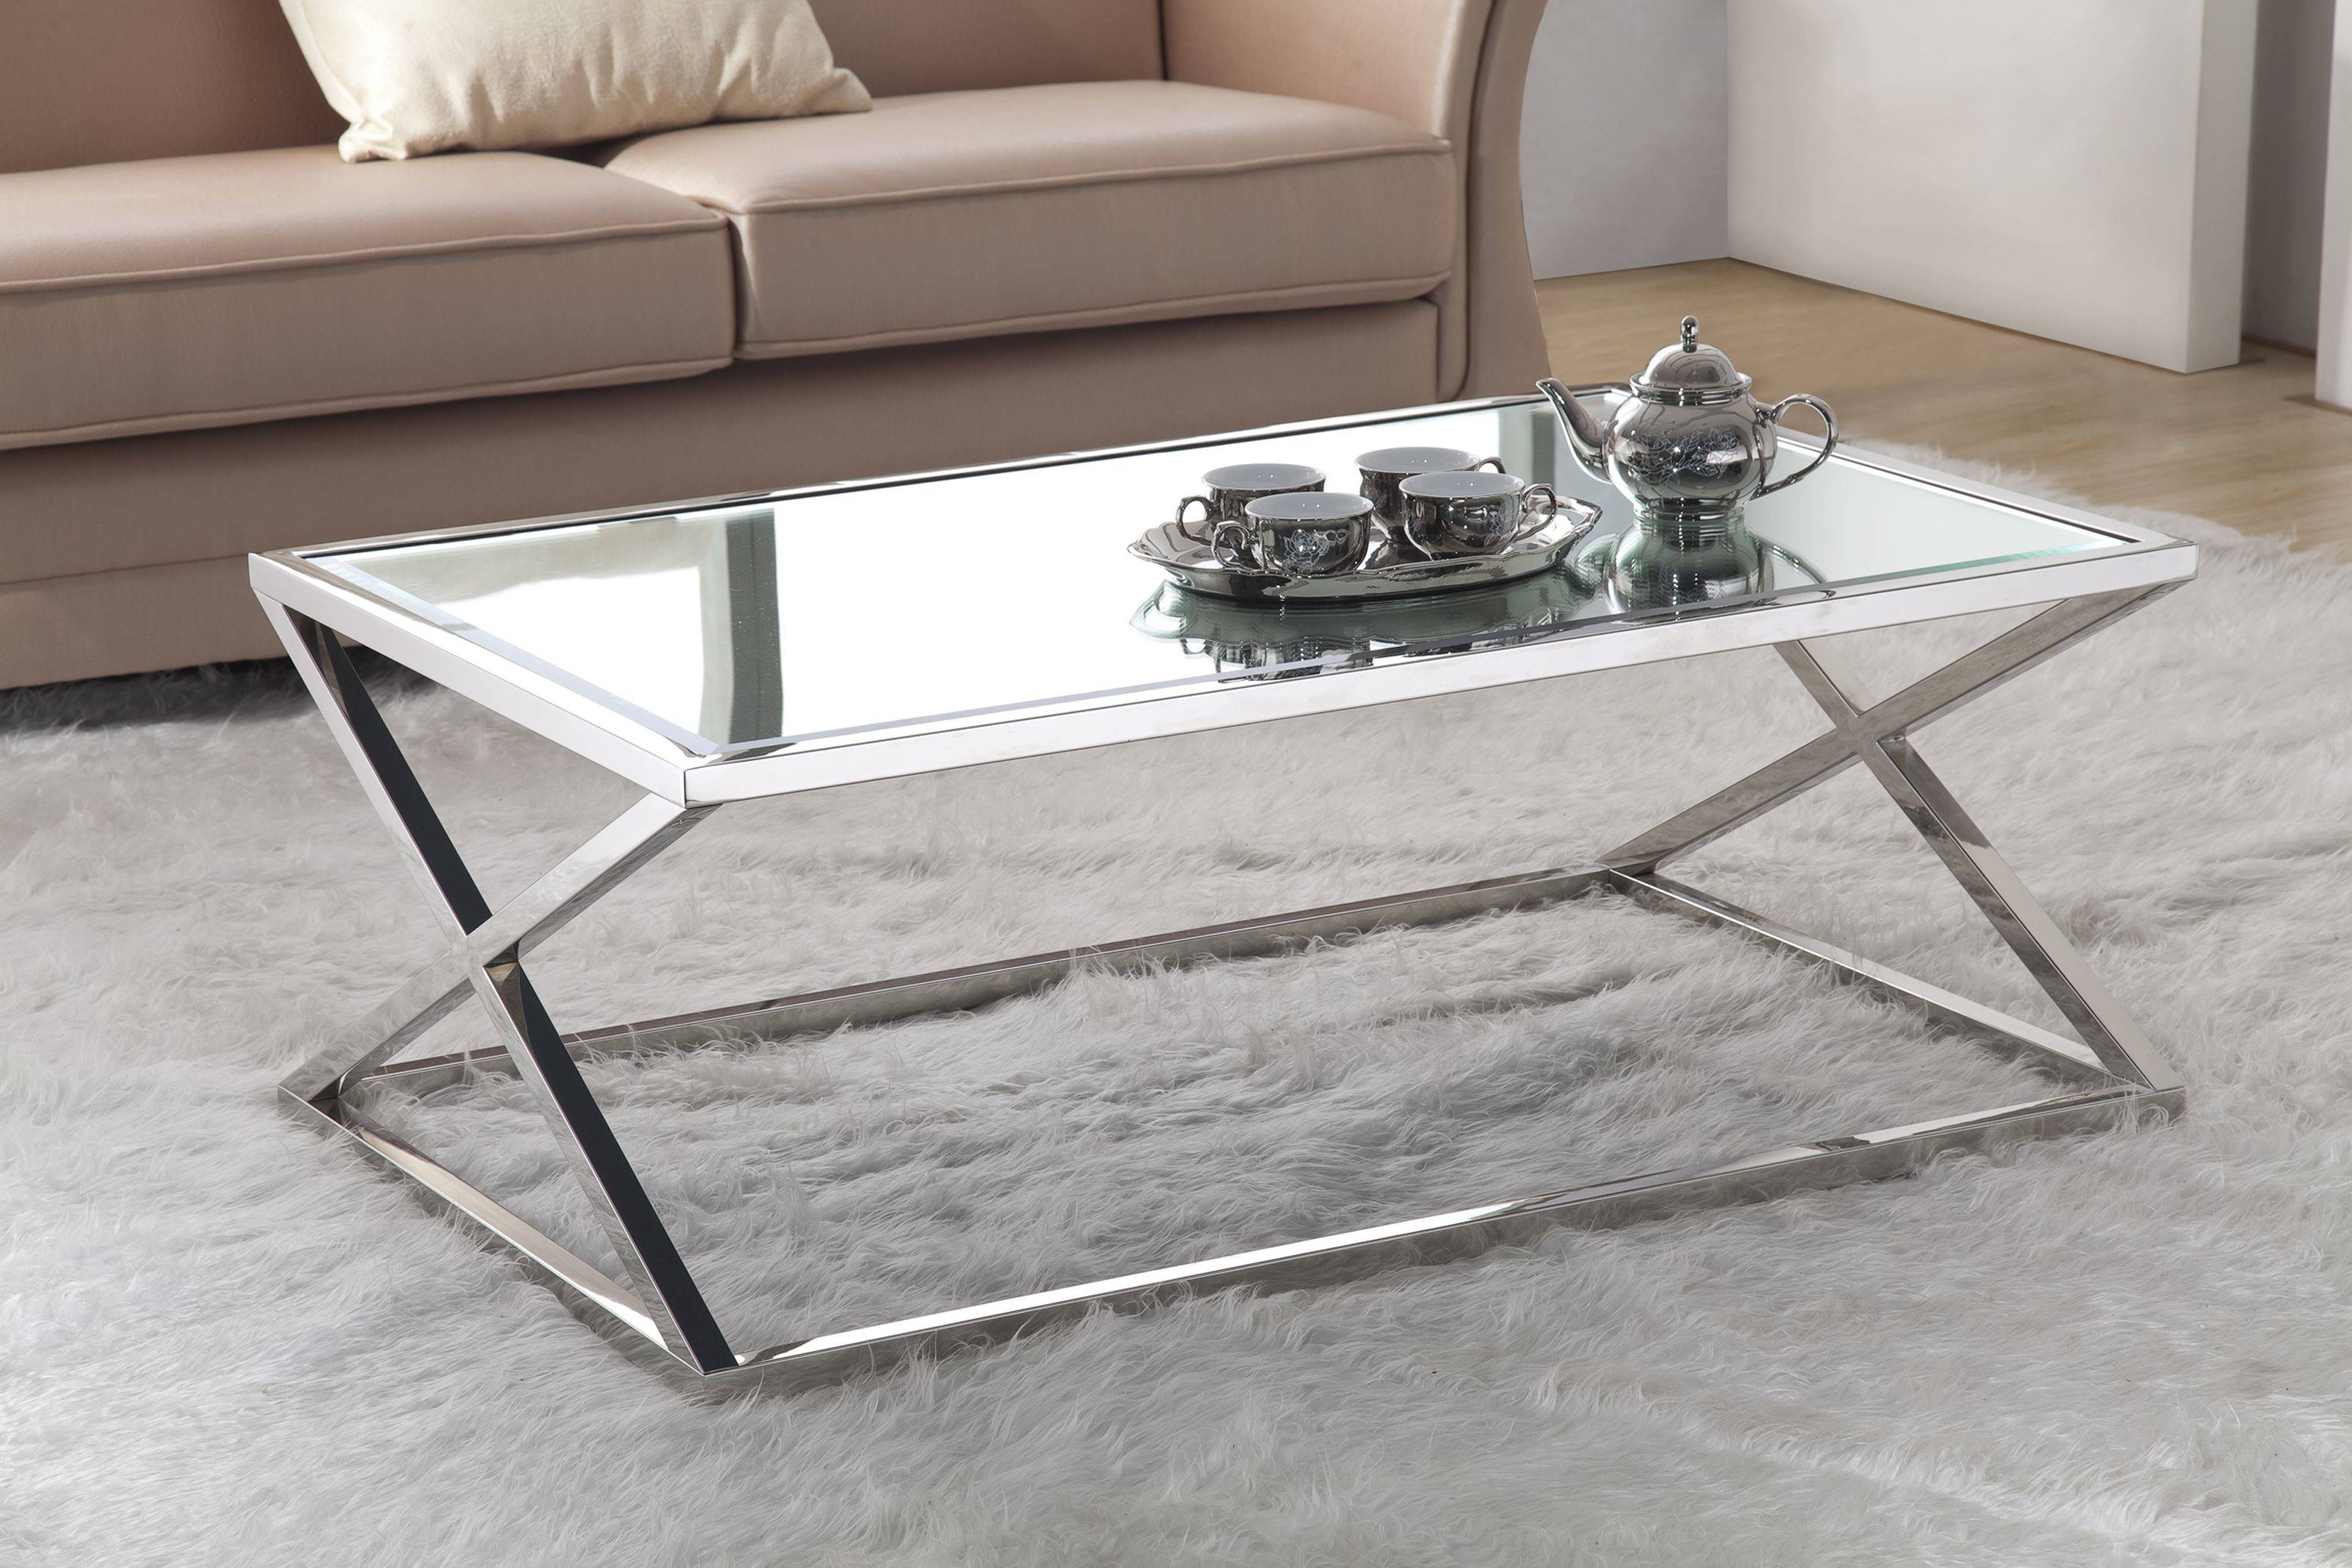 Stainless Steel Coffee Table Cross Legs Base Type Chrome Finish inside Steel And Glass Coffee Tables (Image 26 of 30)